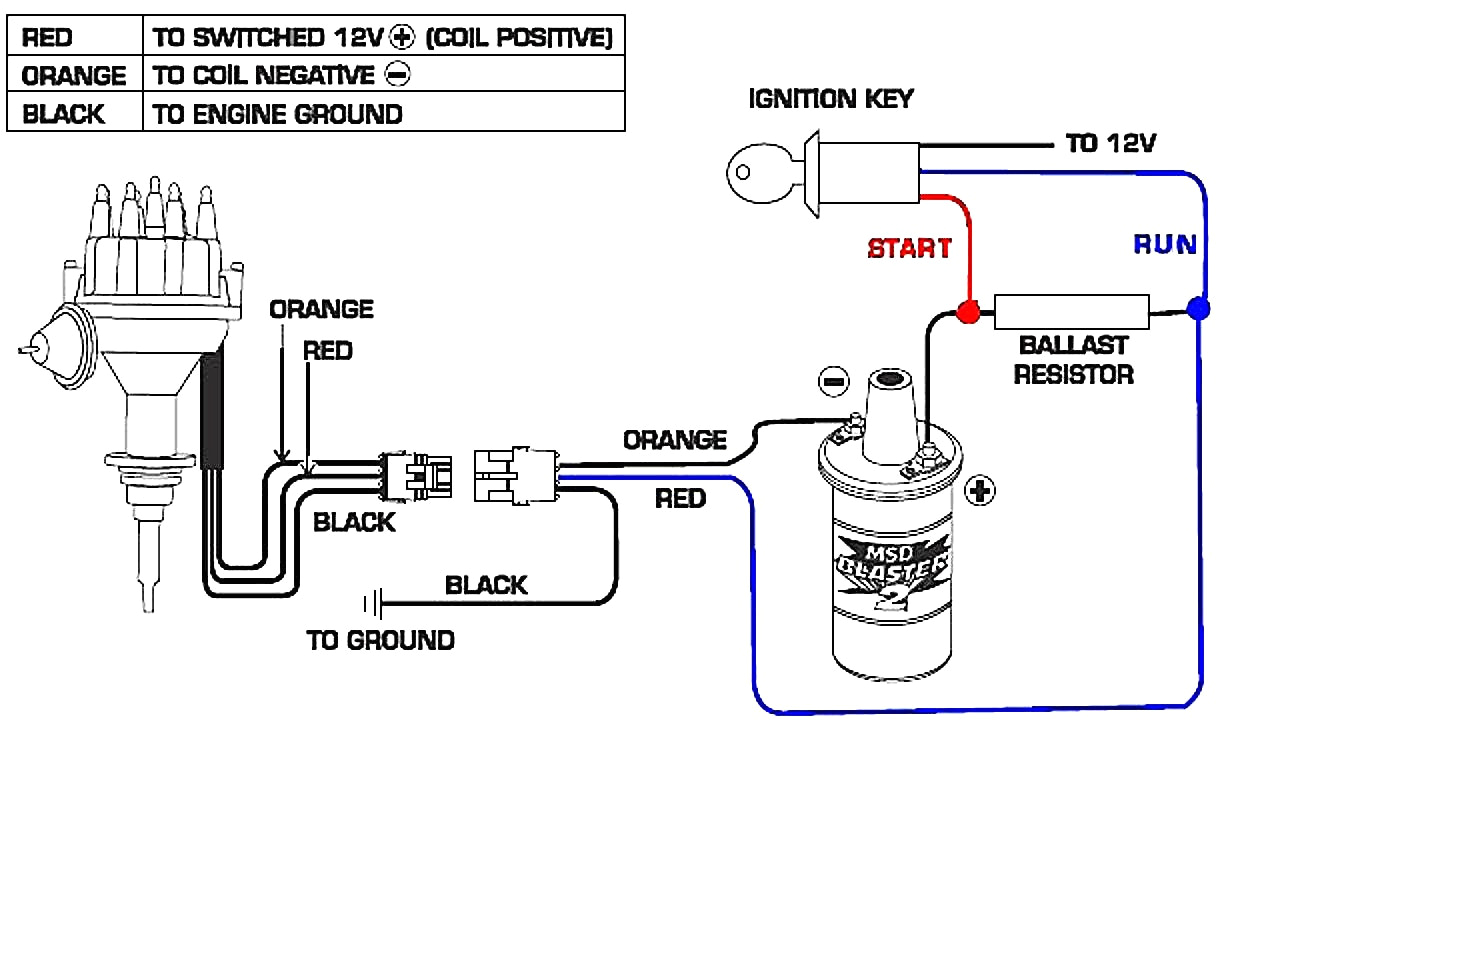 coil and distributor wiring diagram wiring diagram showsbc ignition coil wiring diagram wiring diagram expert coil